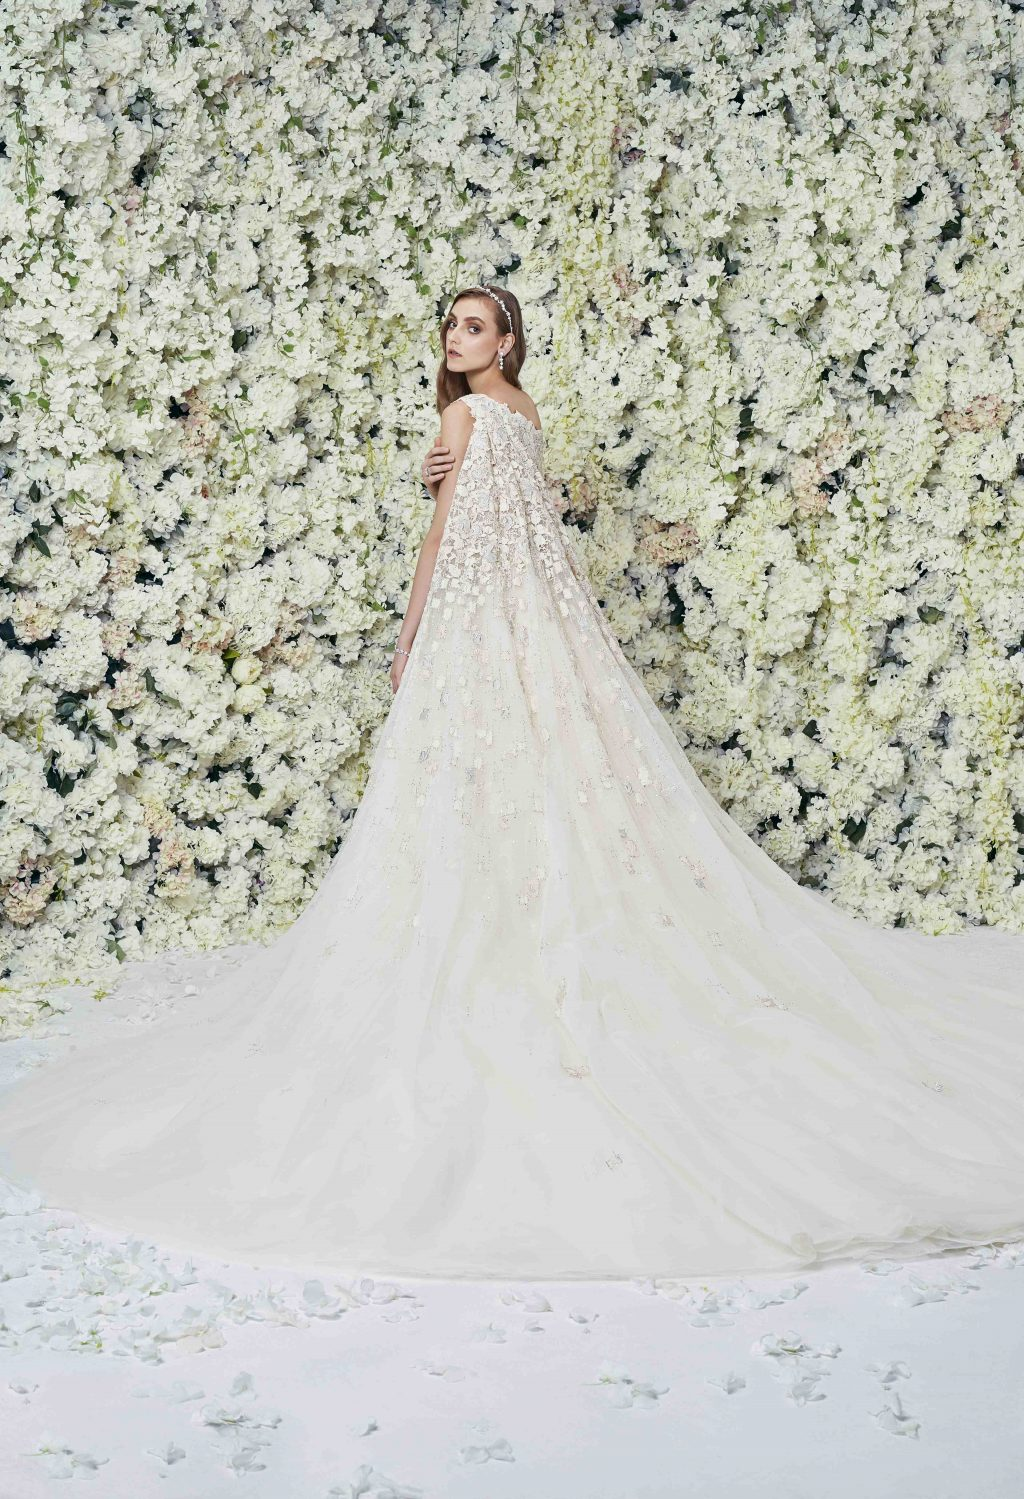 To Have and to Hold: Introducing the New Rami Al Ali Bridal Collection